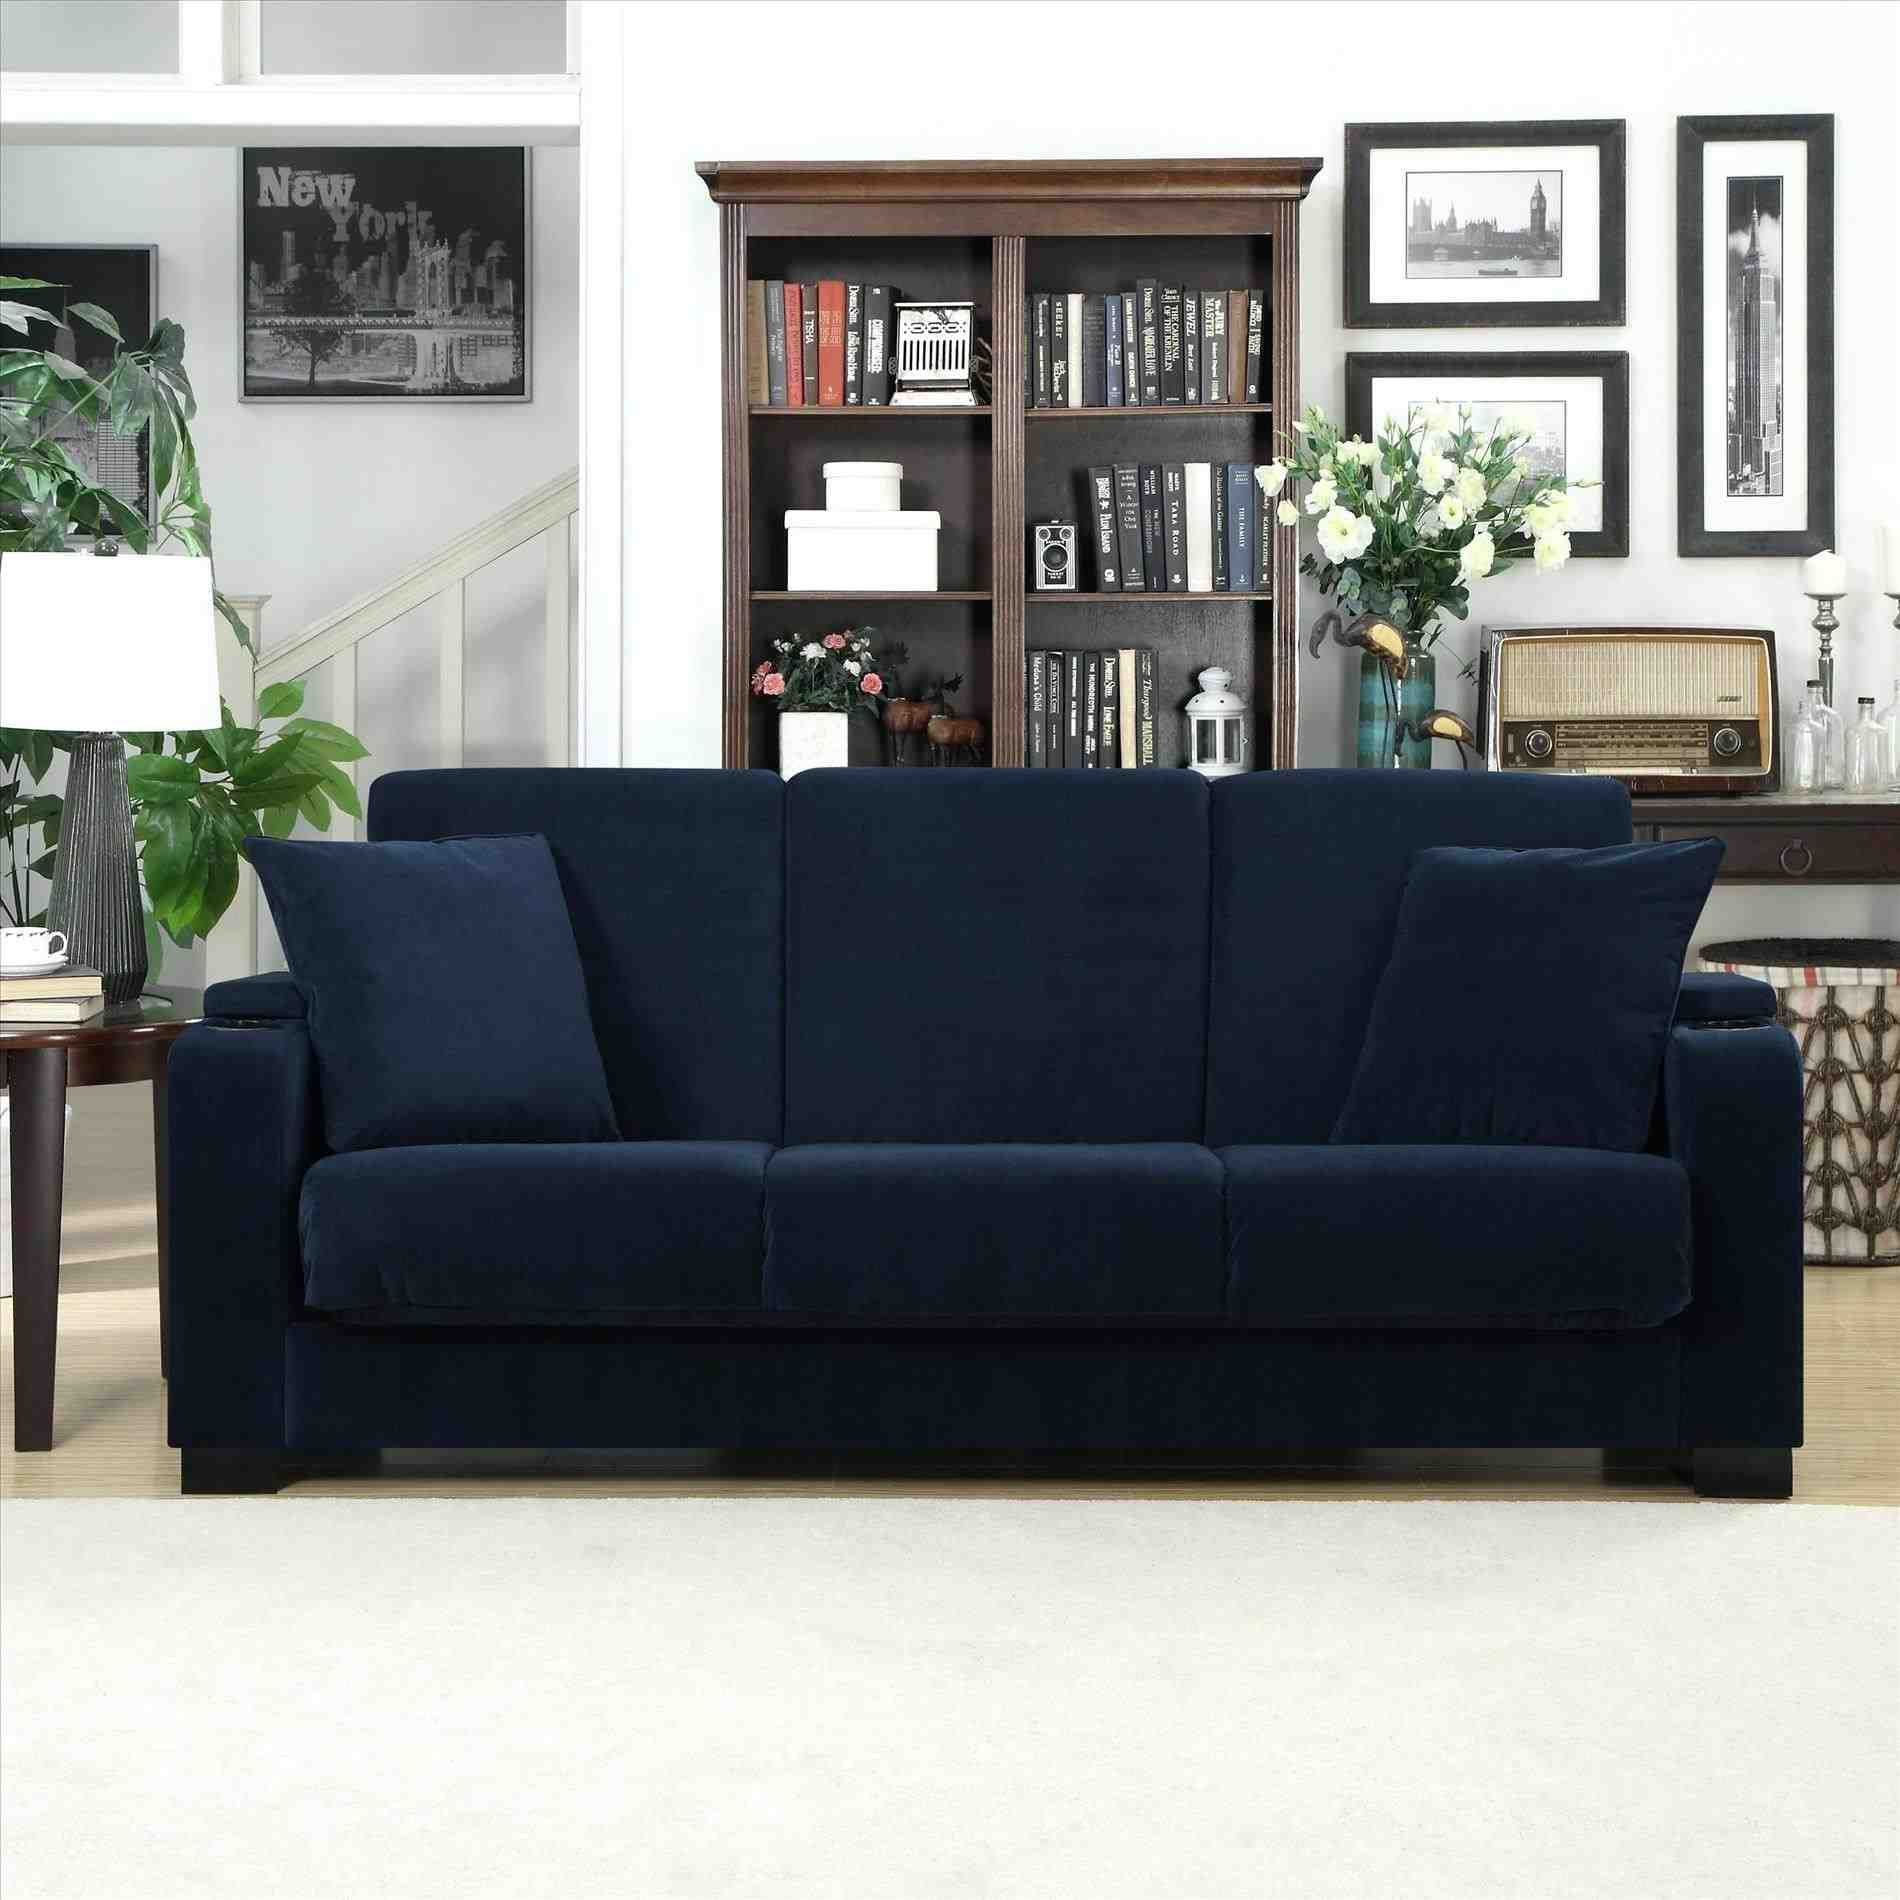 Living Room Prices Candice Olson Colors Cheap Sofa Deals Uk Chairs Furniture In Nigeria Only Sale Full Size Of Pull Out Couch Corner Sofas Bed